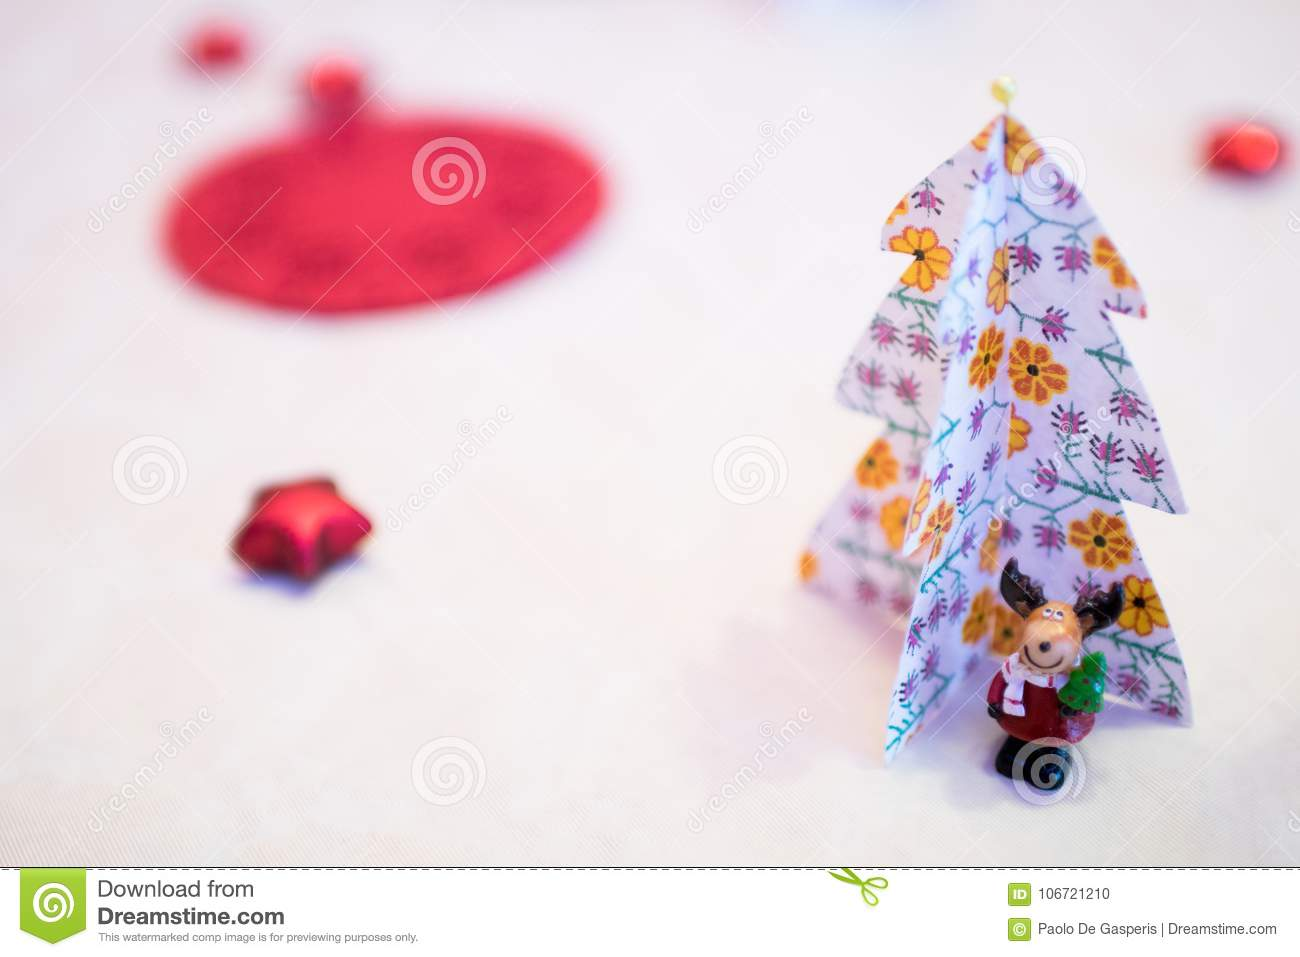 christmas decorations with paper christmas trees and a reindeer mascot dressed as santa claus under a handmade paper tree decorations for a white table of - Handmade Paper Christmas Decorations